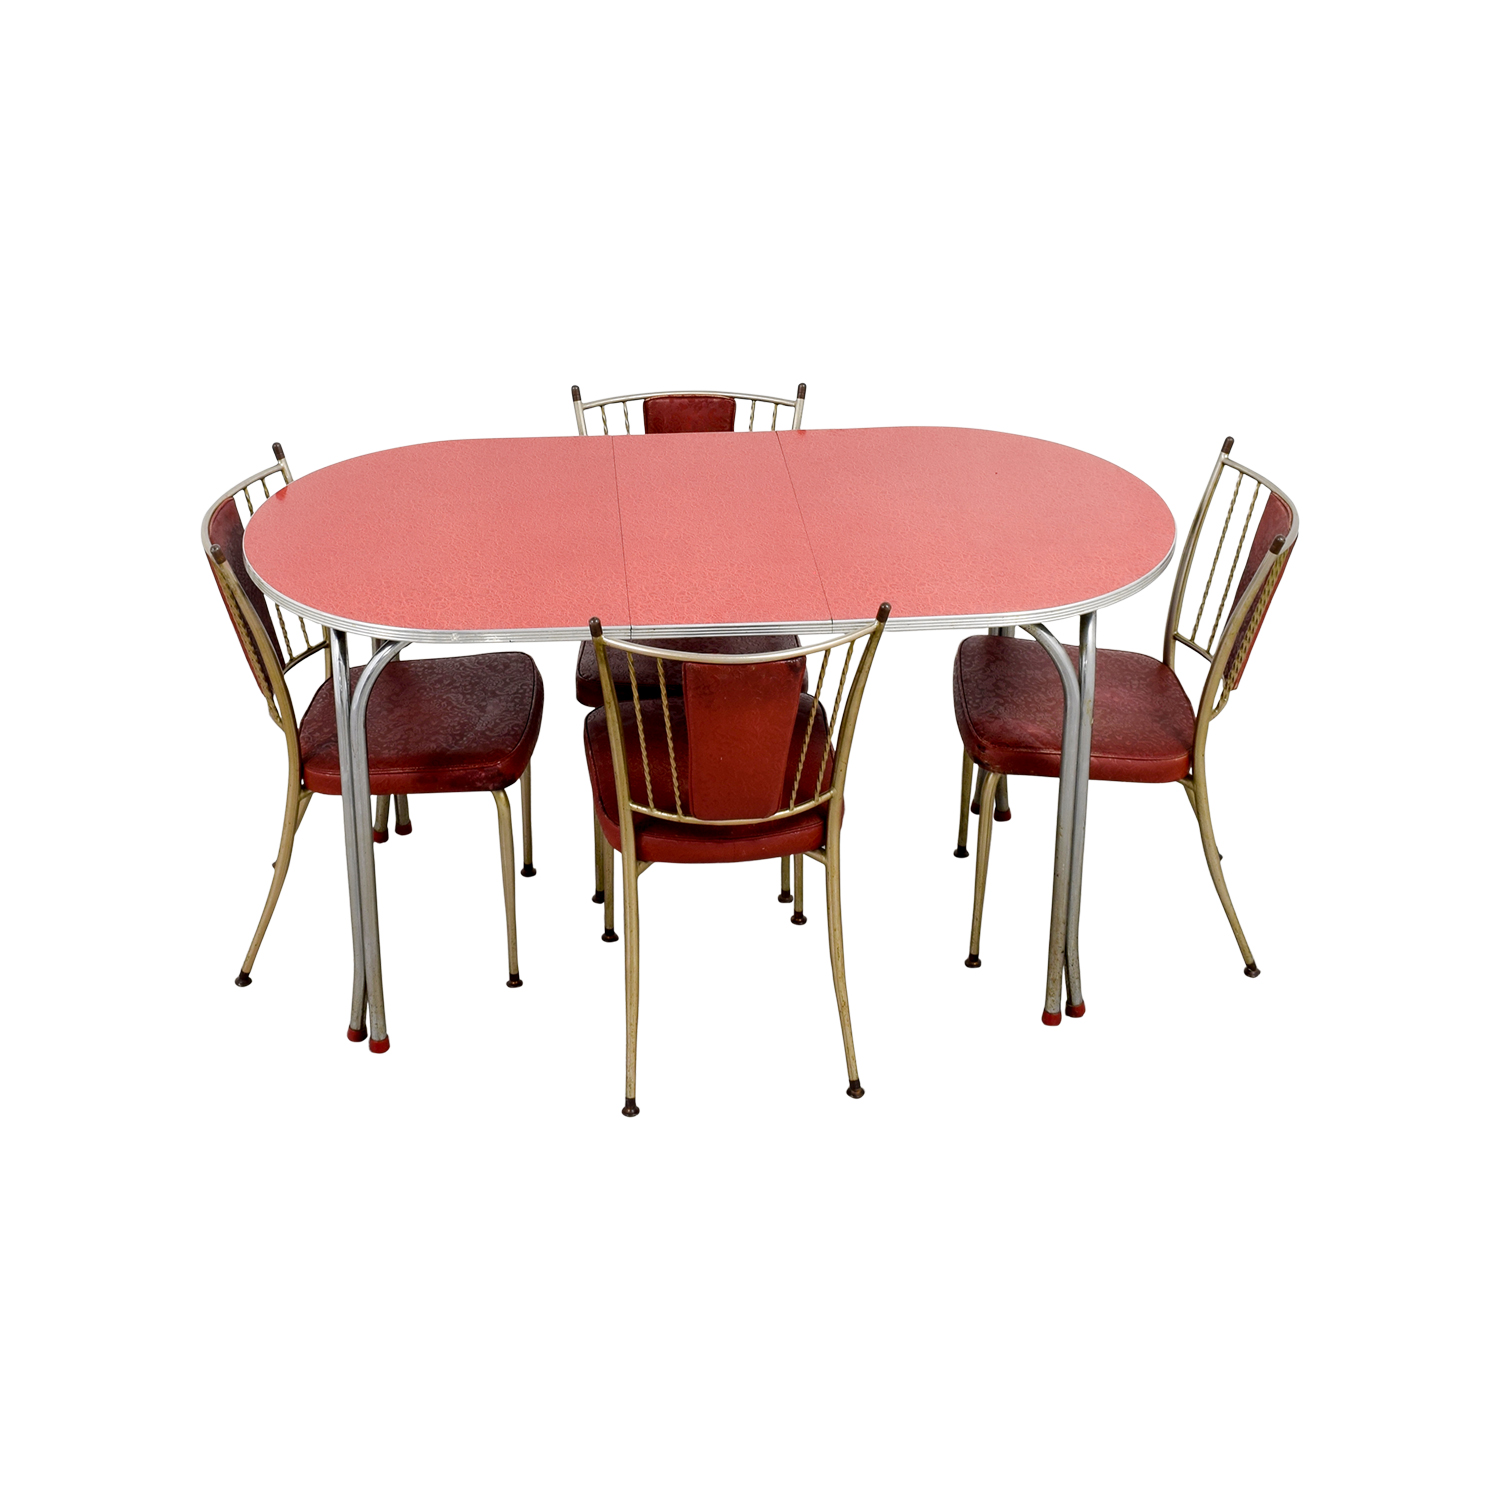 Retro Red Dinette Set second hand